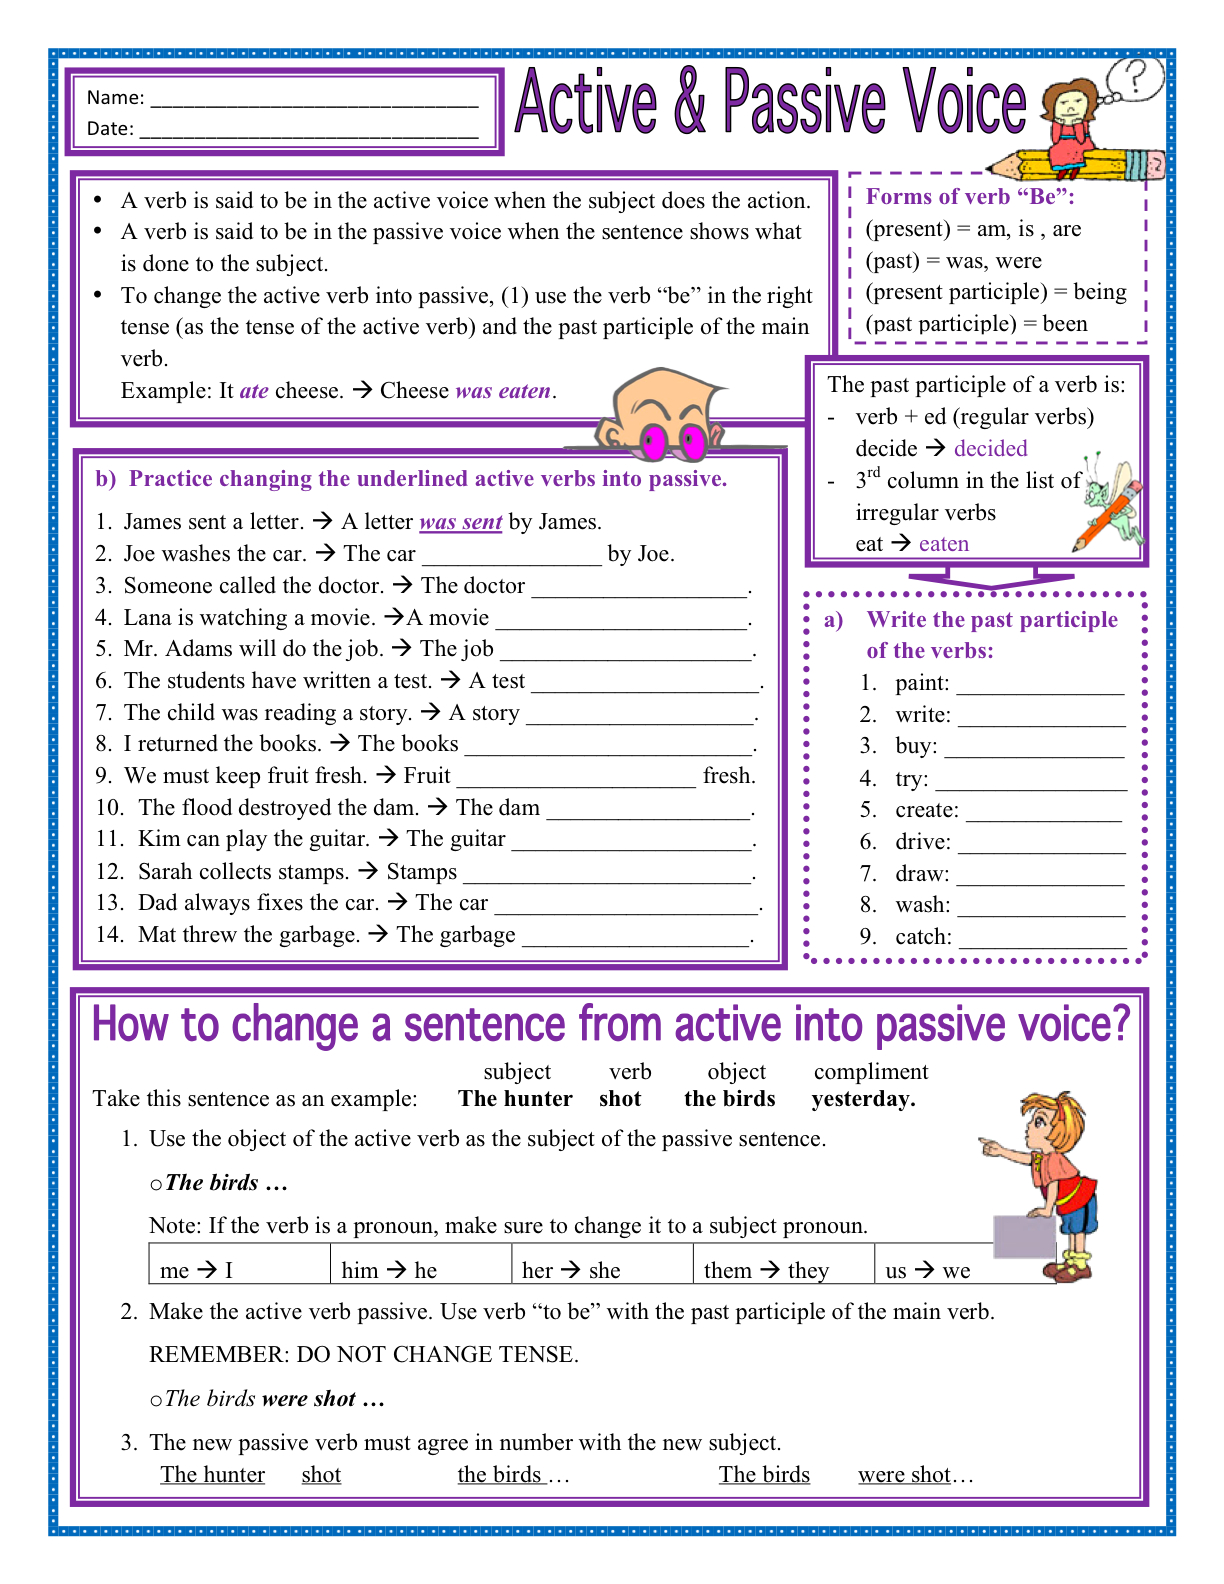 Worksheet Active And Passive Voice Worksheet Grass Fedjp